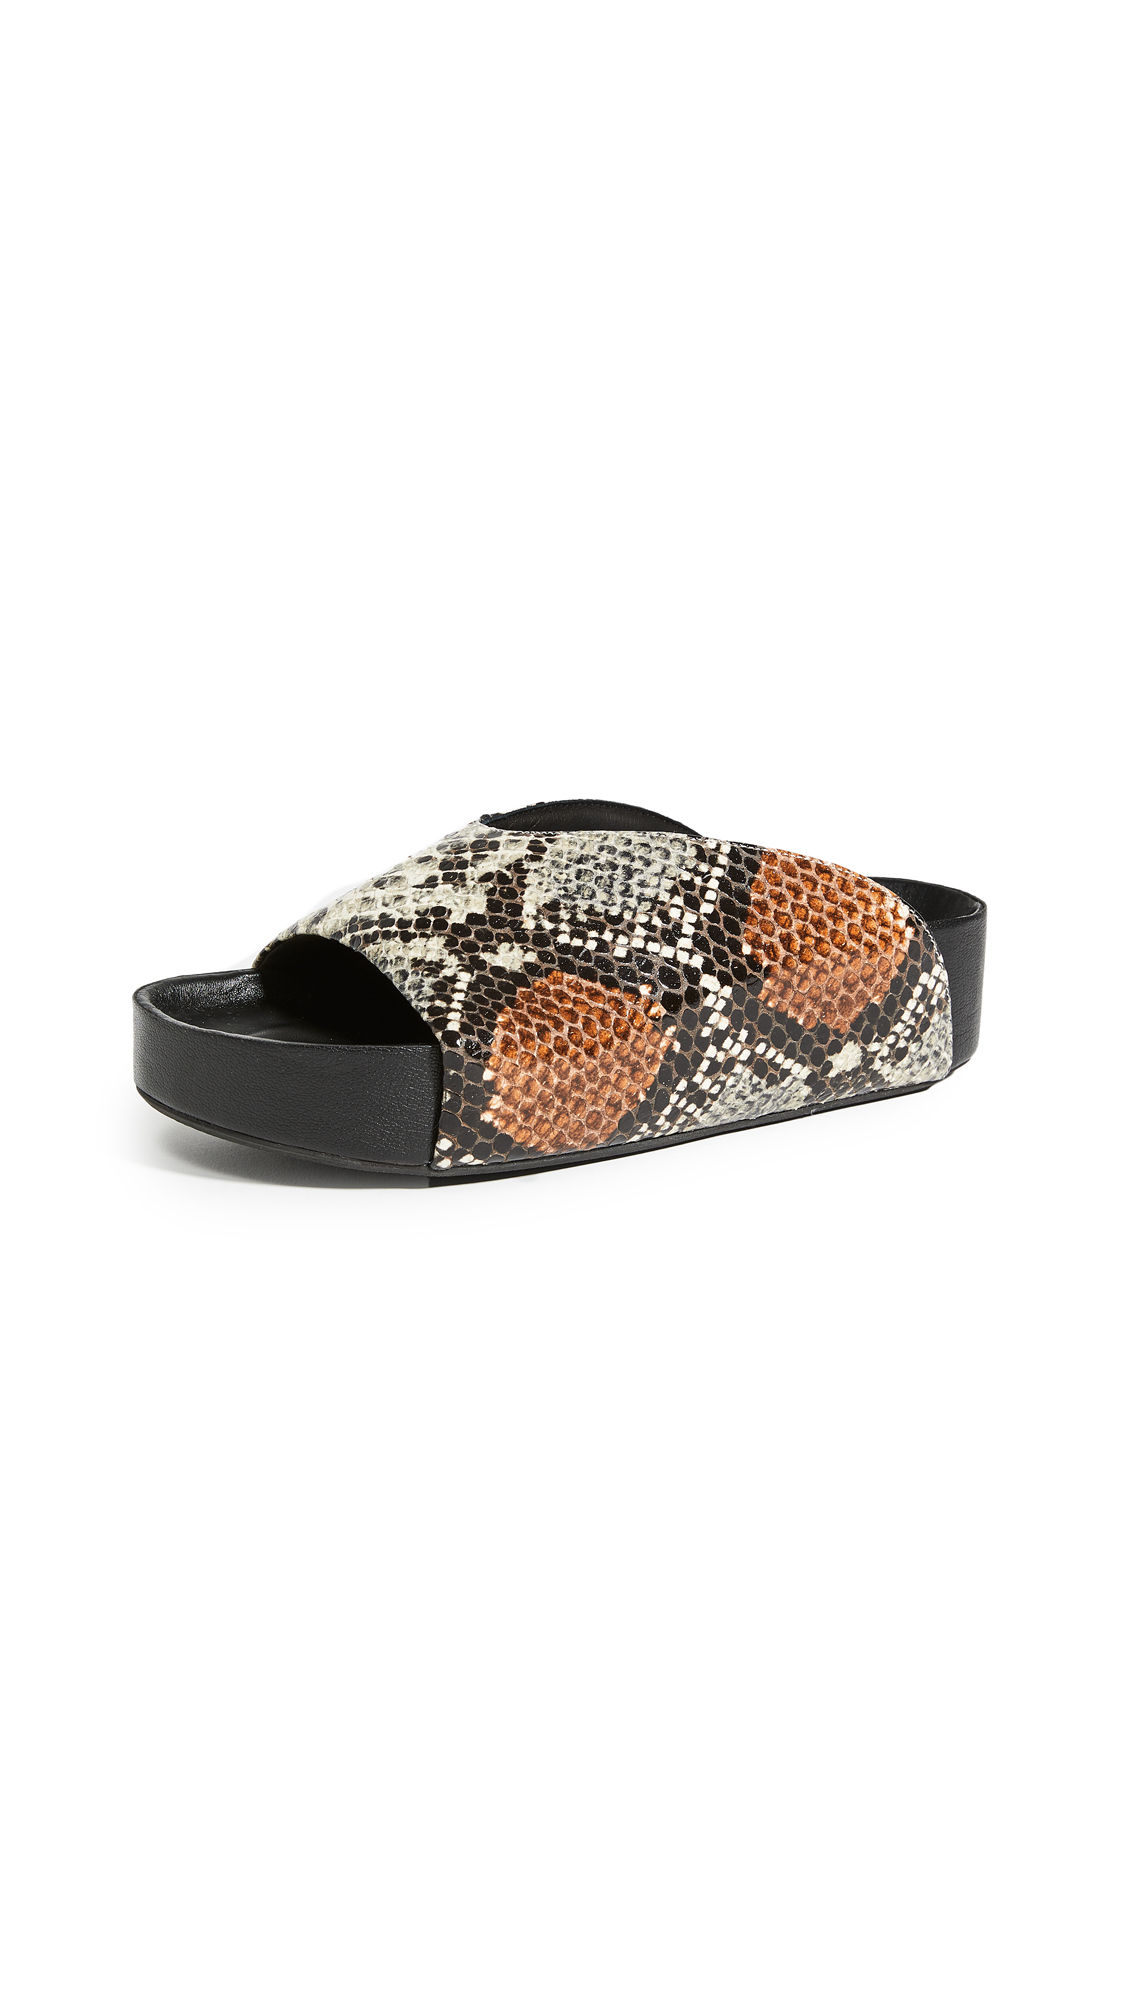 Simon Miller Dip Slides - 30% Off Sale